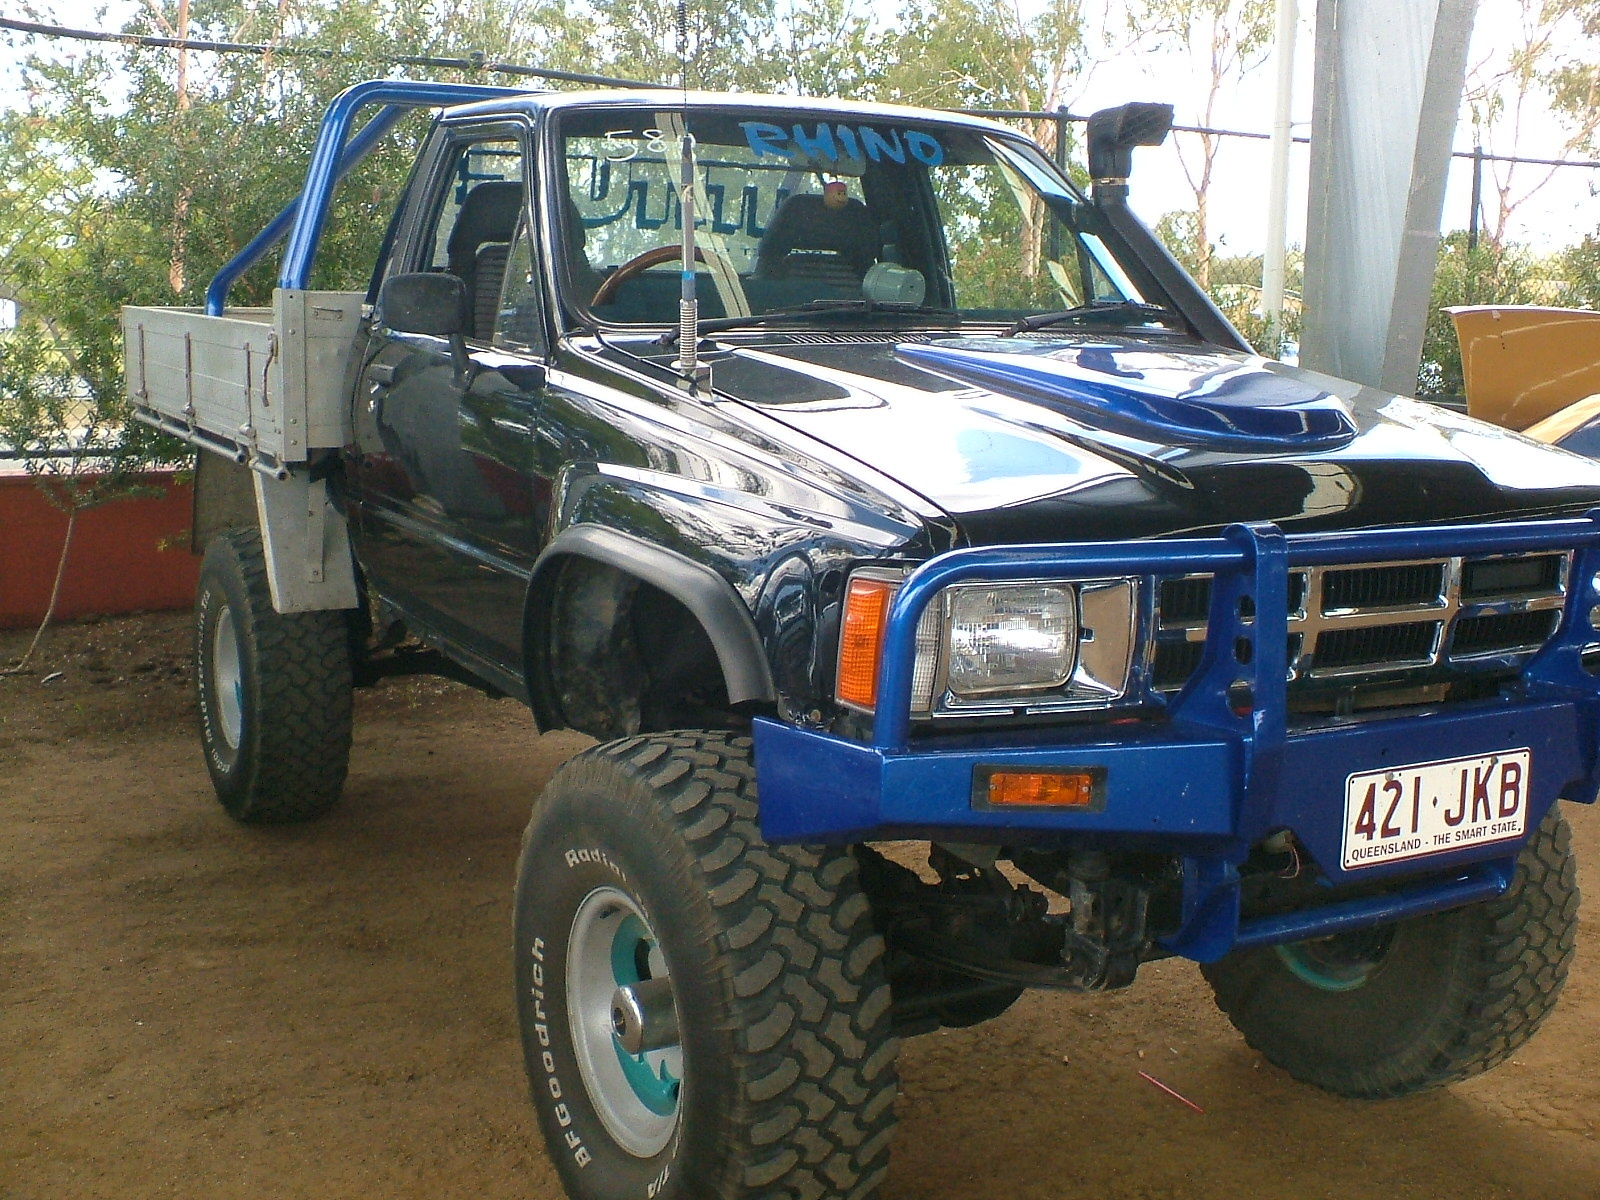 95 ford ranger weight